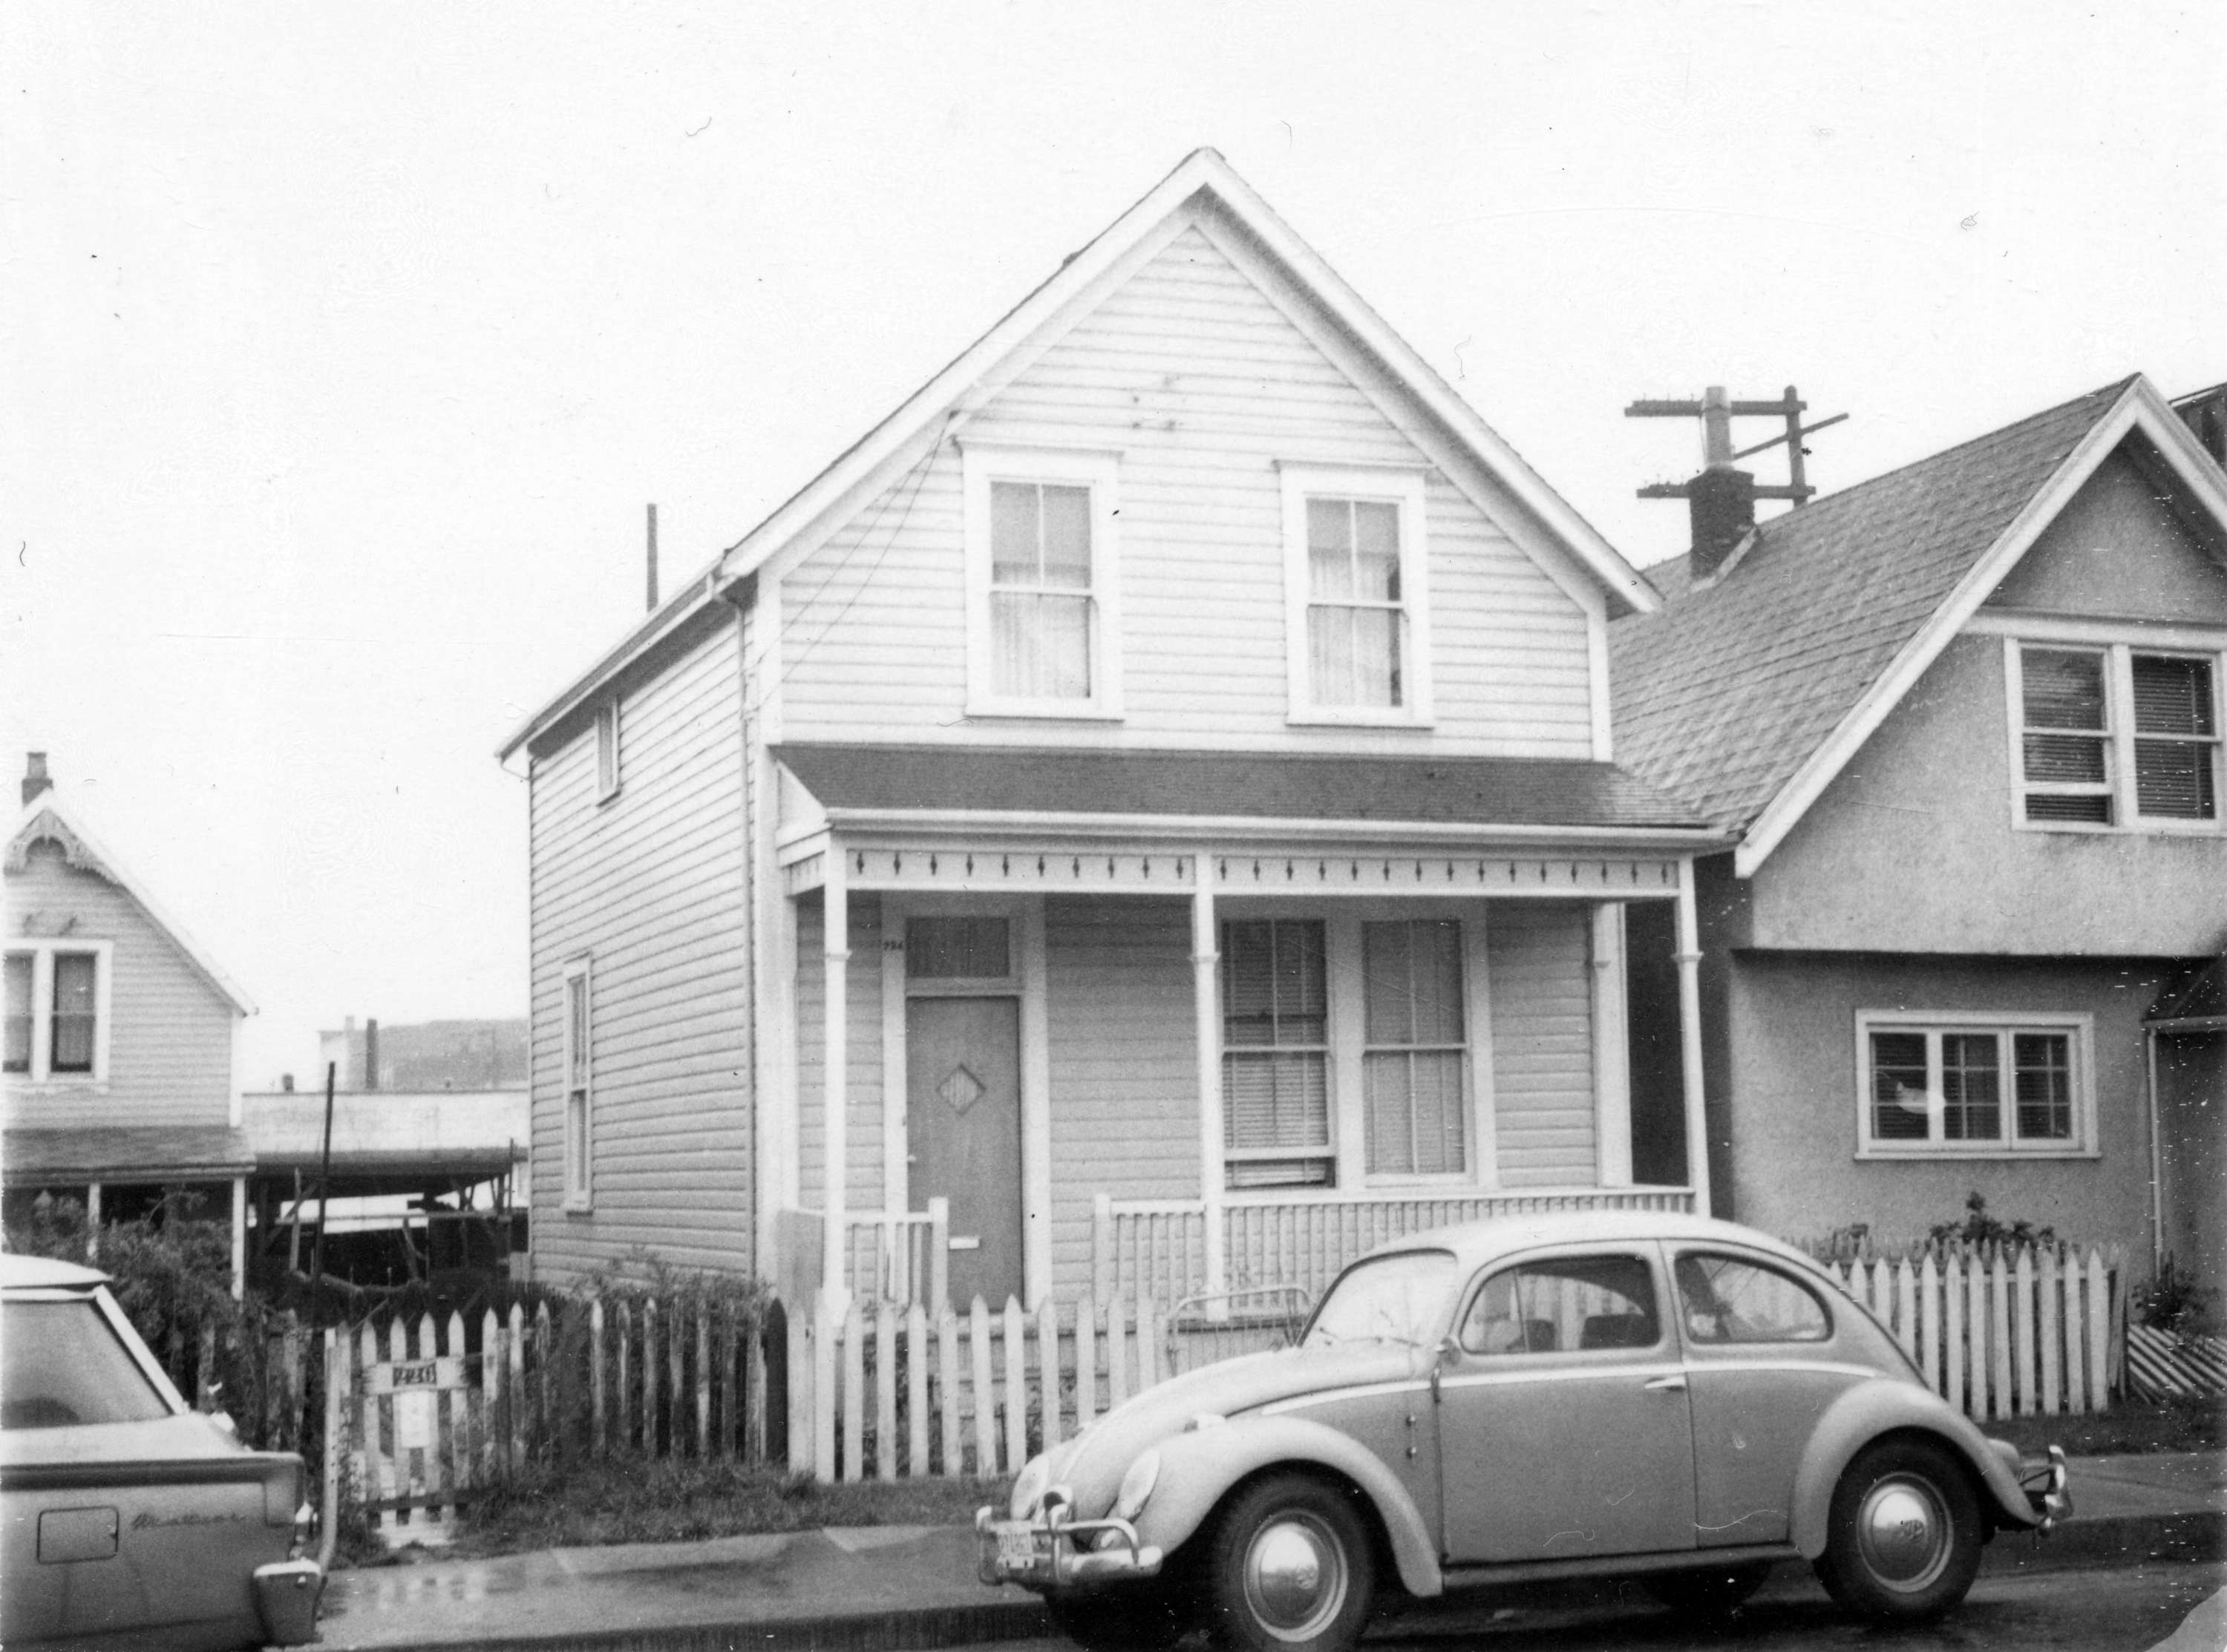 224 Union Street, a street in Hogan's Alley, 1968, in Vancouver B.C.